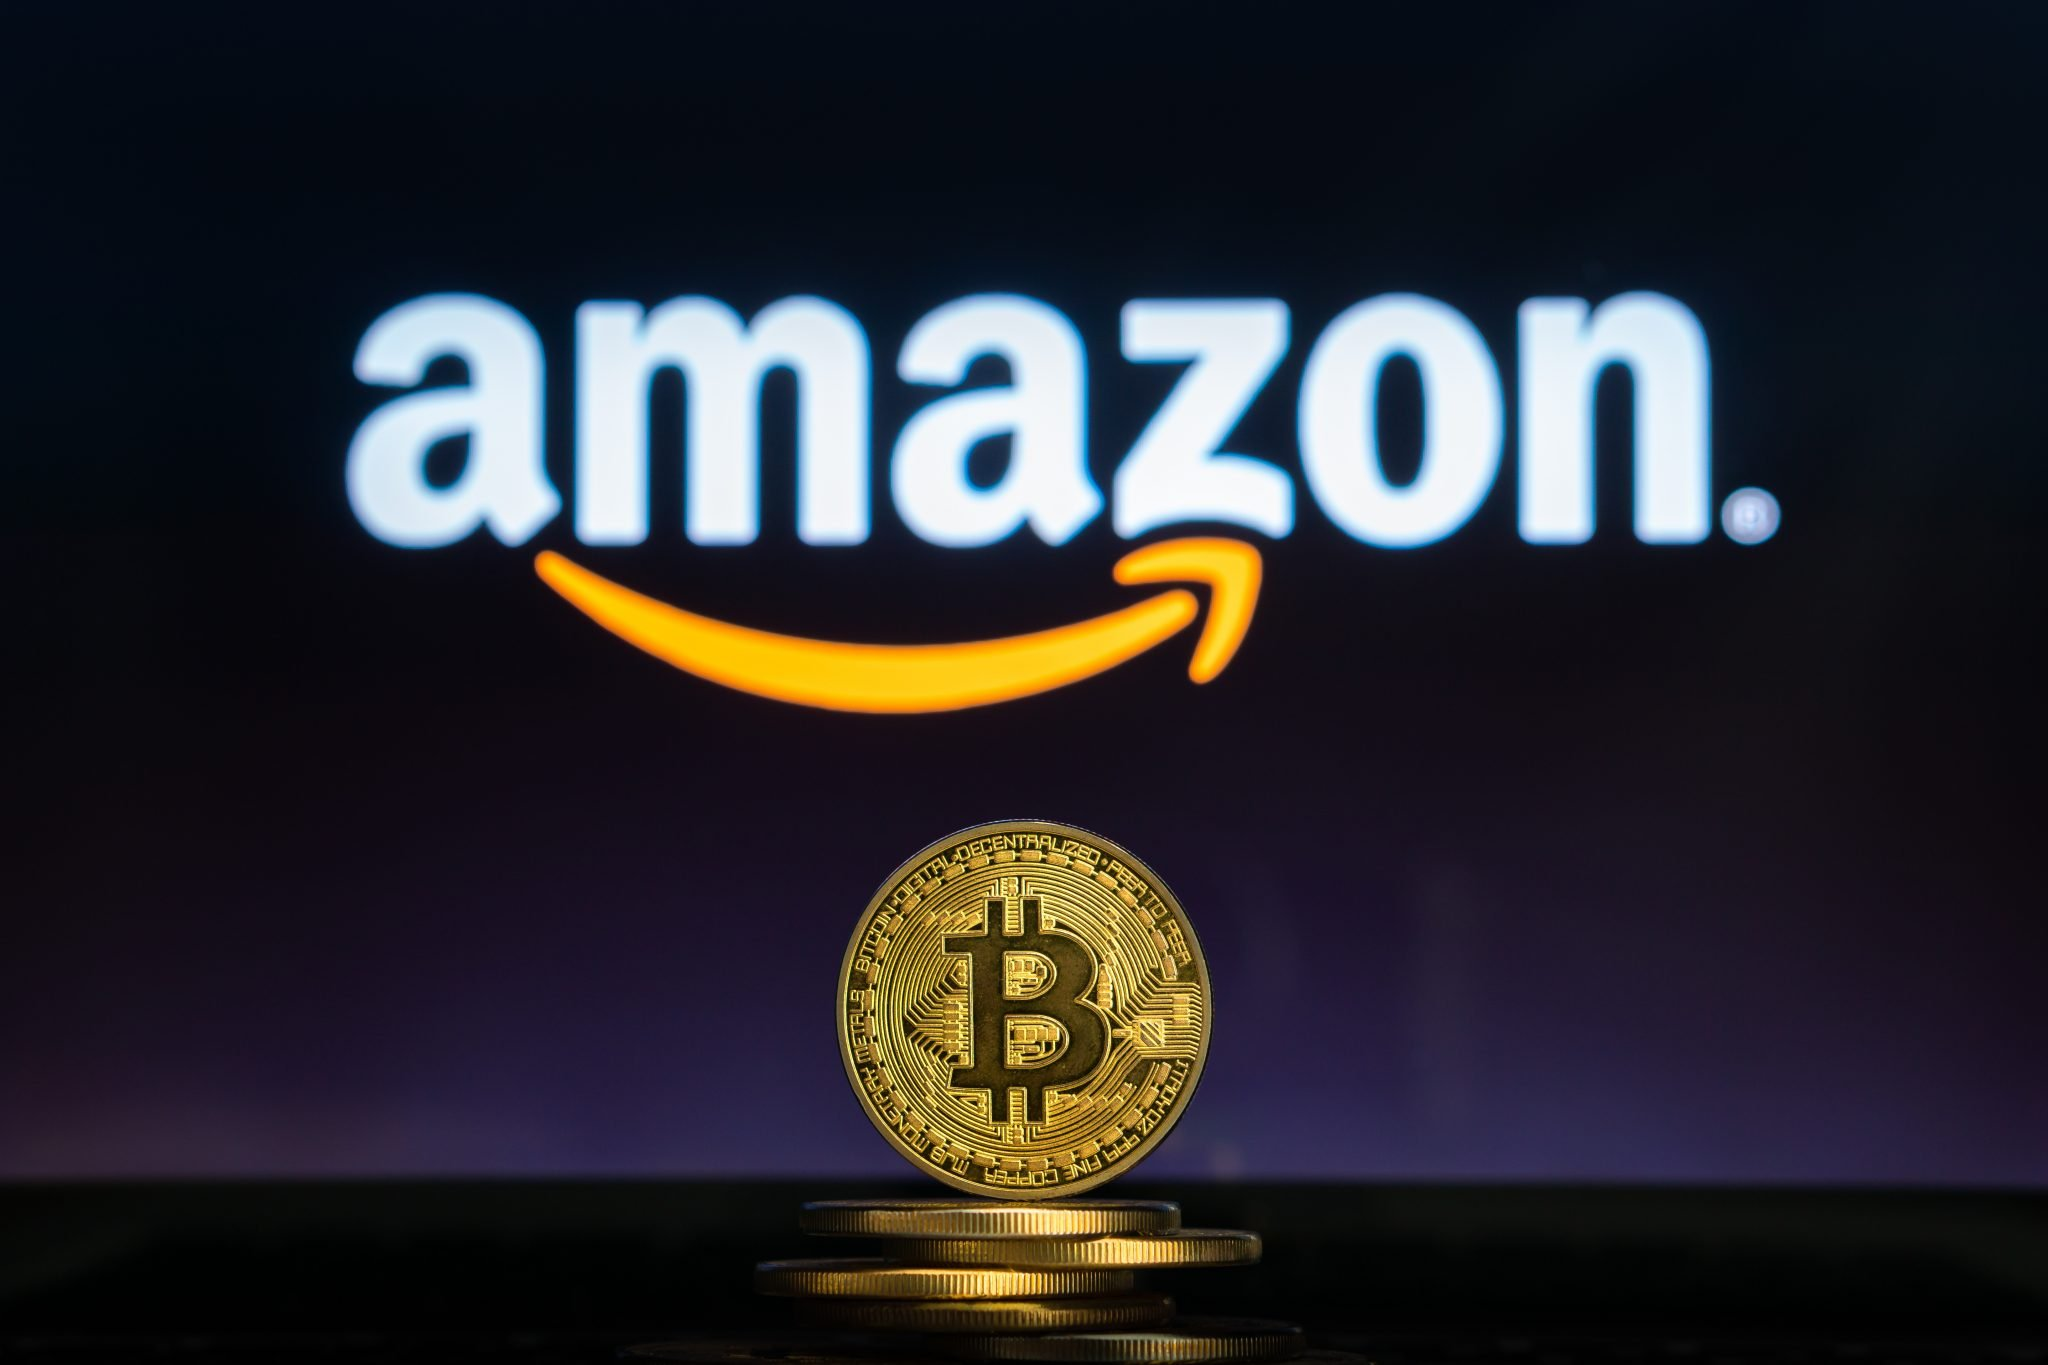 Amazon logo on a computer screen with a stack of Bitcoin cryptocurency coins.